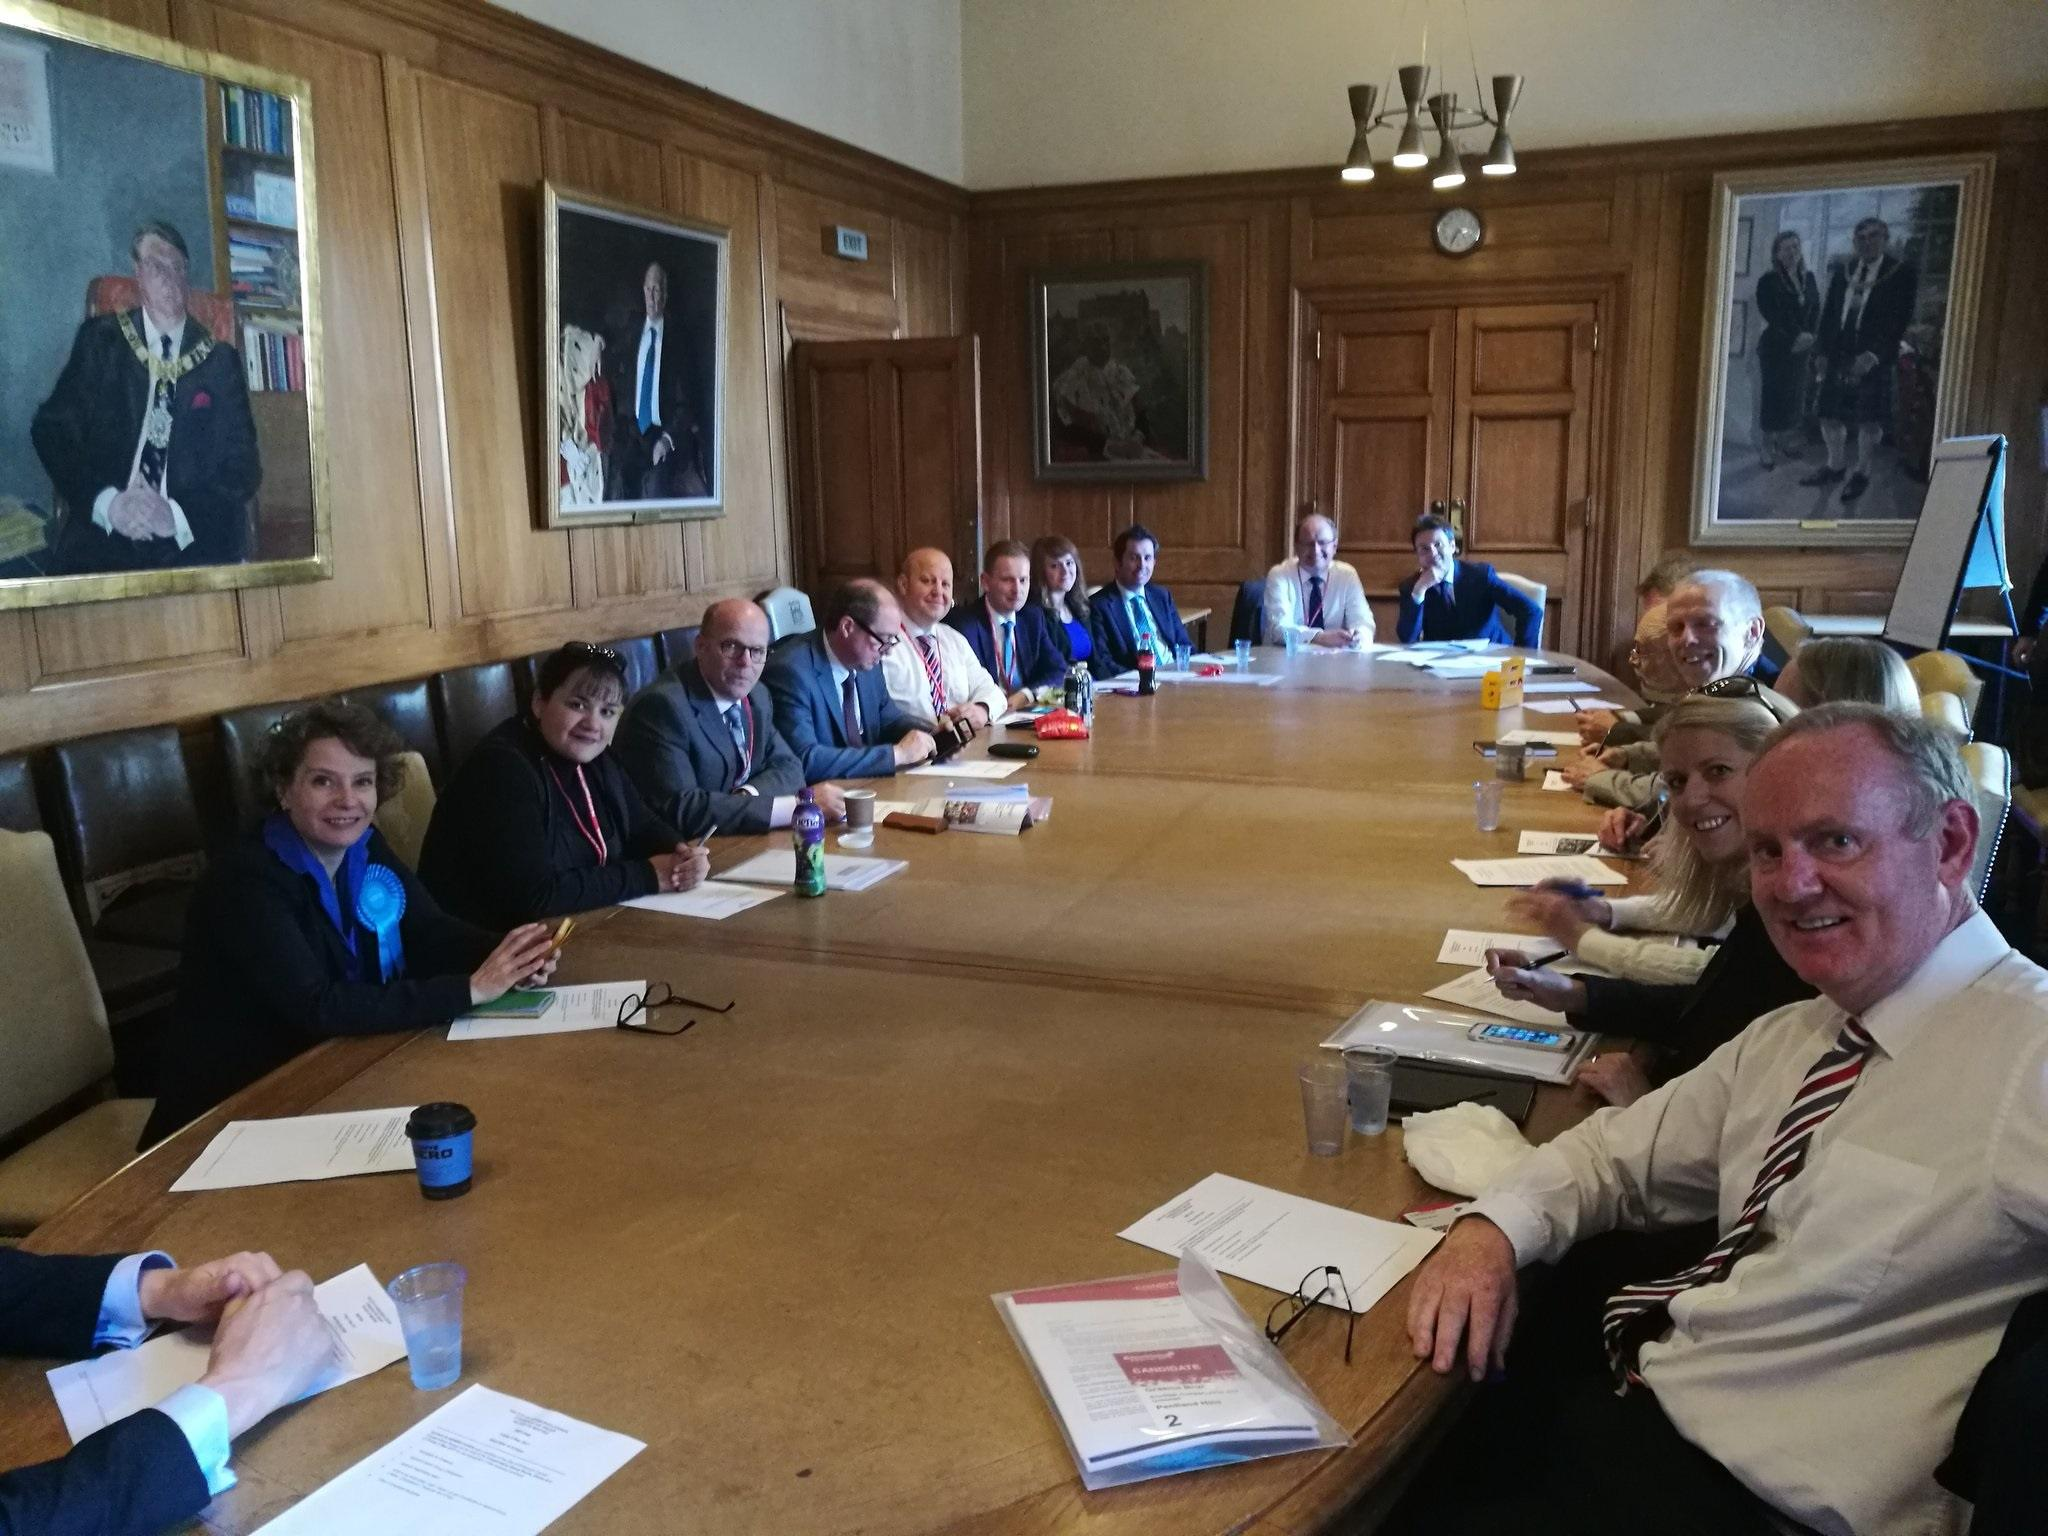 The new Edinburgh Conservative Group meeting for the first time at City Chambers